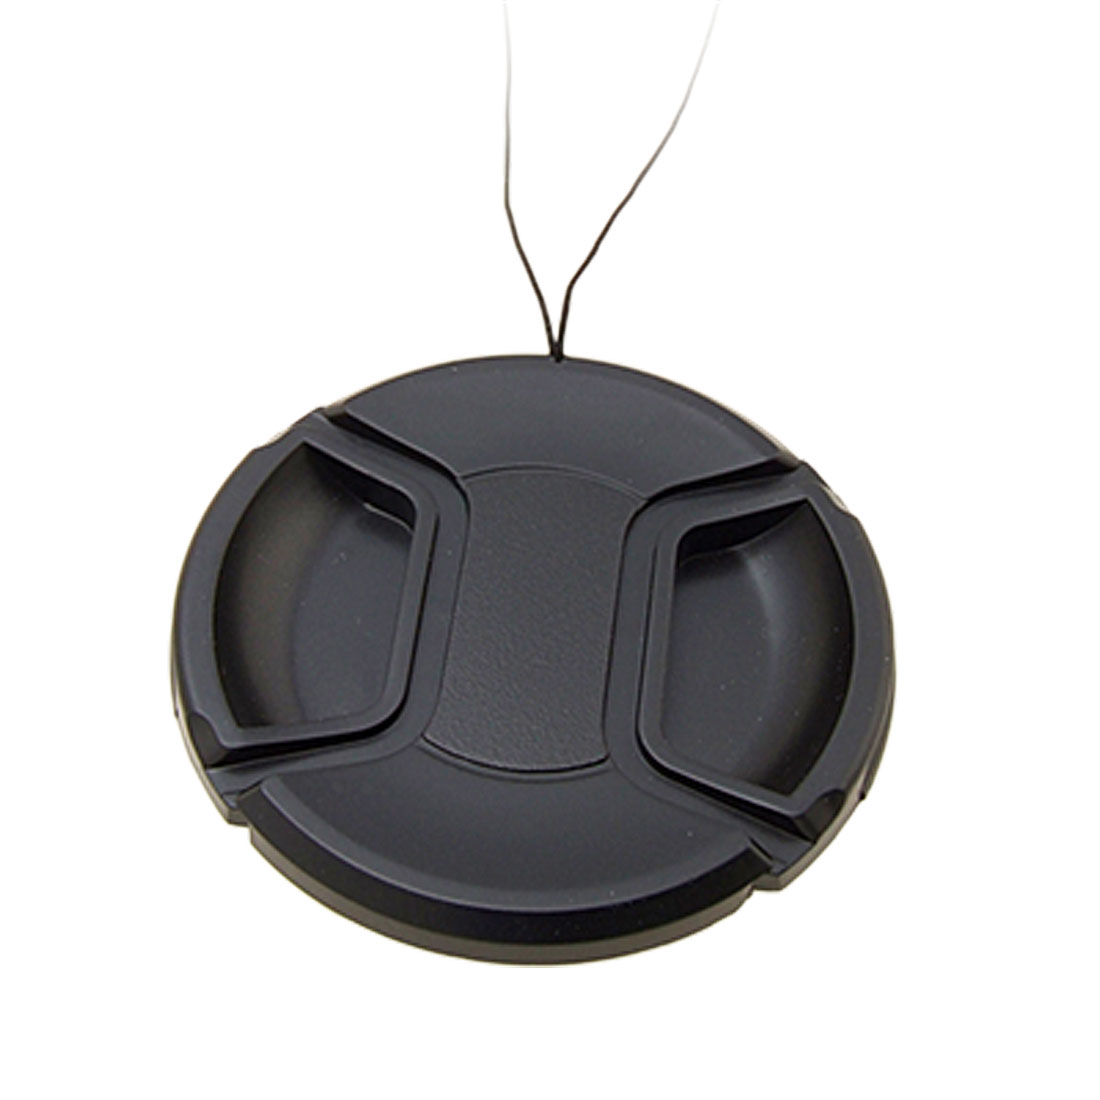 72mm Center Pinch Lens Cap Cover for Digital Camera